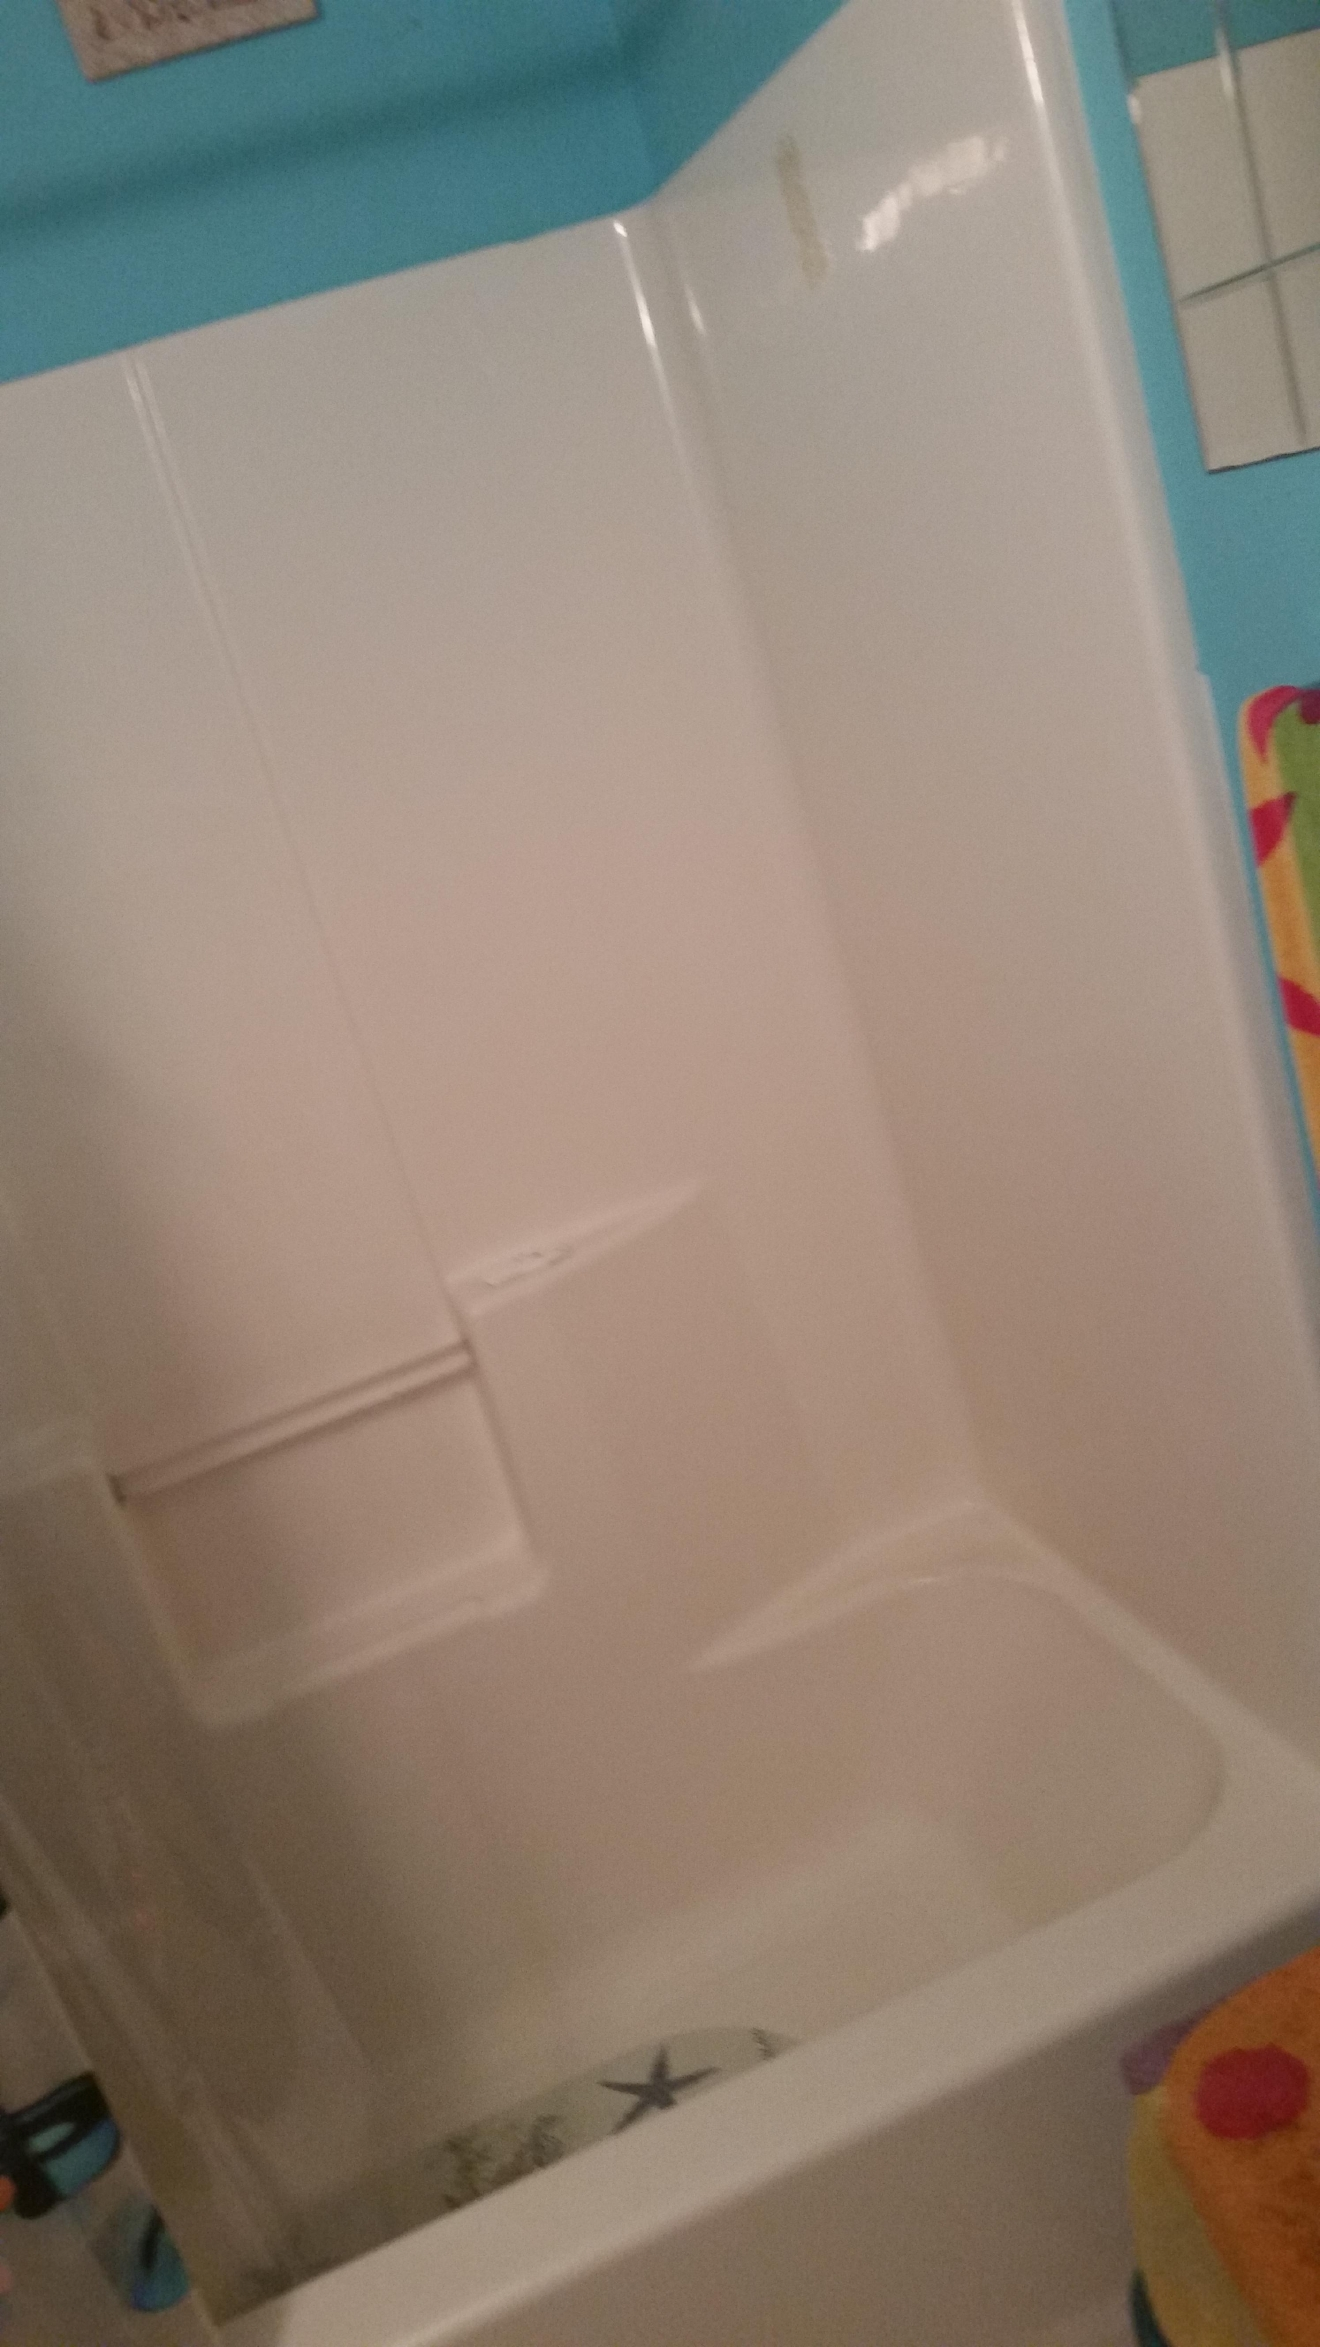 When we posted that our friends at Bath Fitter N.W. wanted to spruce up a viewer bathroom with a shower or tub upgrade - we weren't sure they response we'd get. But the photos have flooded in, all requesting that they be picked for Bath Makeover! Take a look at these viewer photos, and let us know who you think deserve the #BathUpgrade! (Image: Evelyn Stivers)